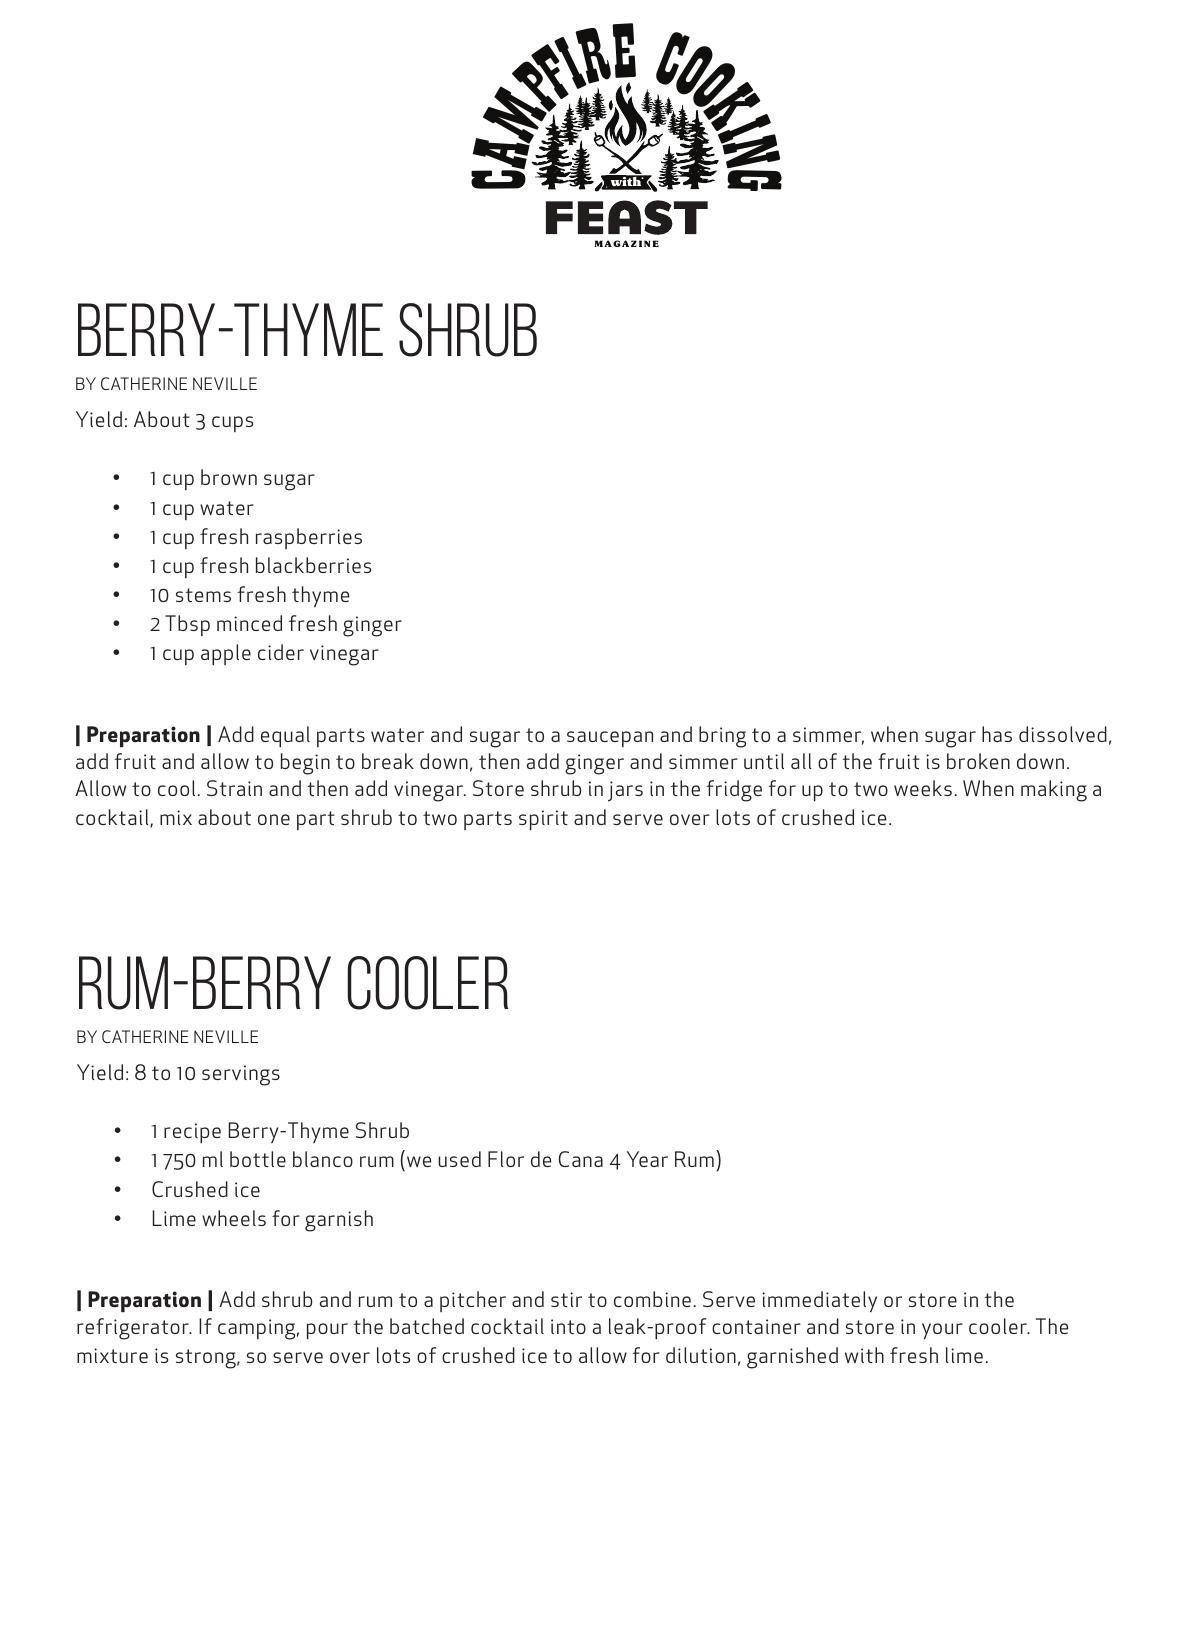 Print your copy: Batched Cocktails!